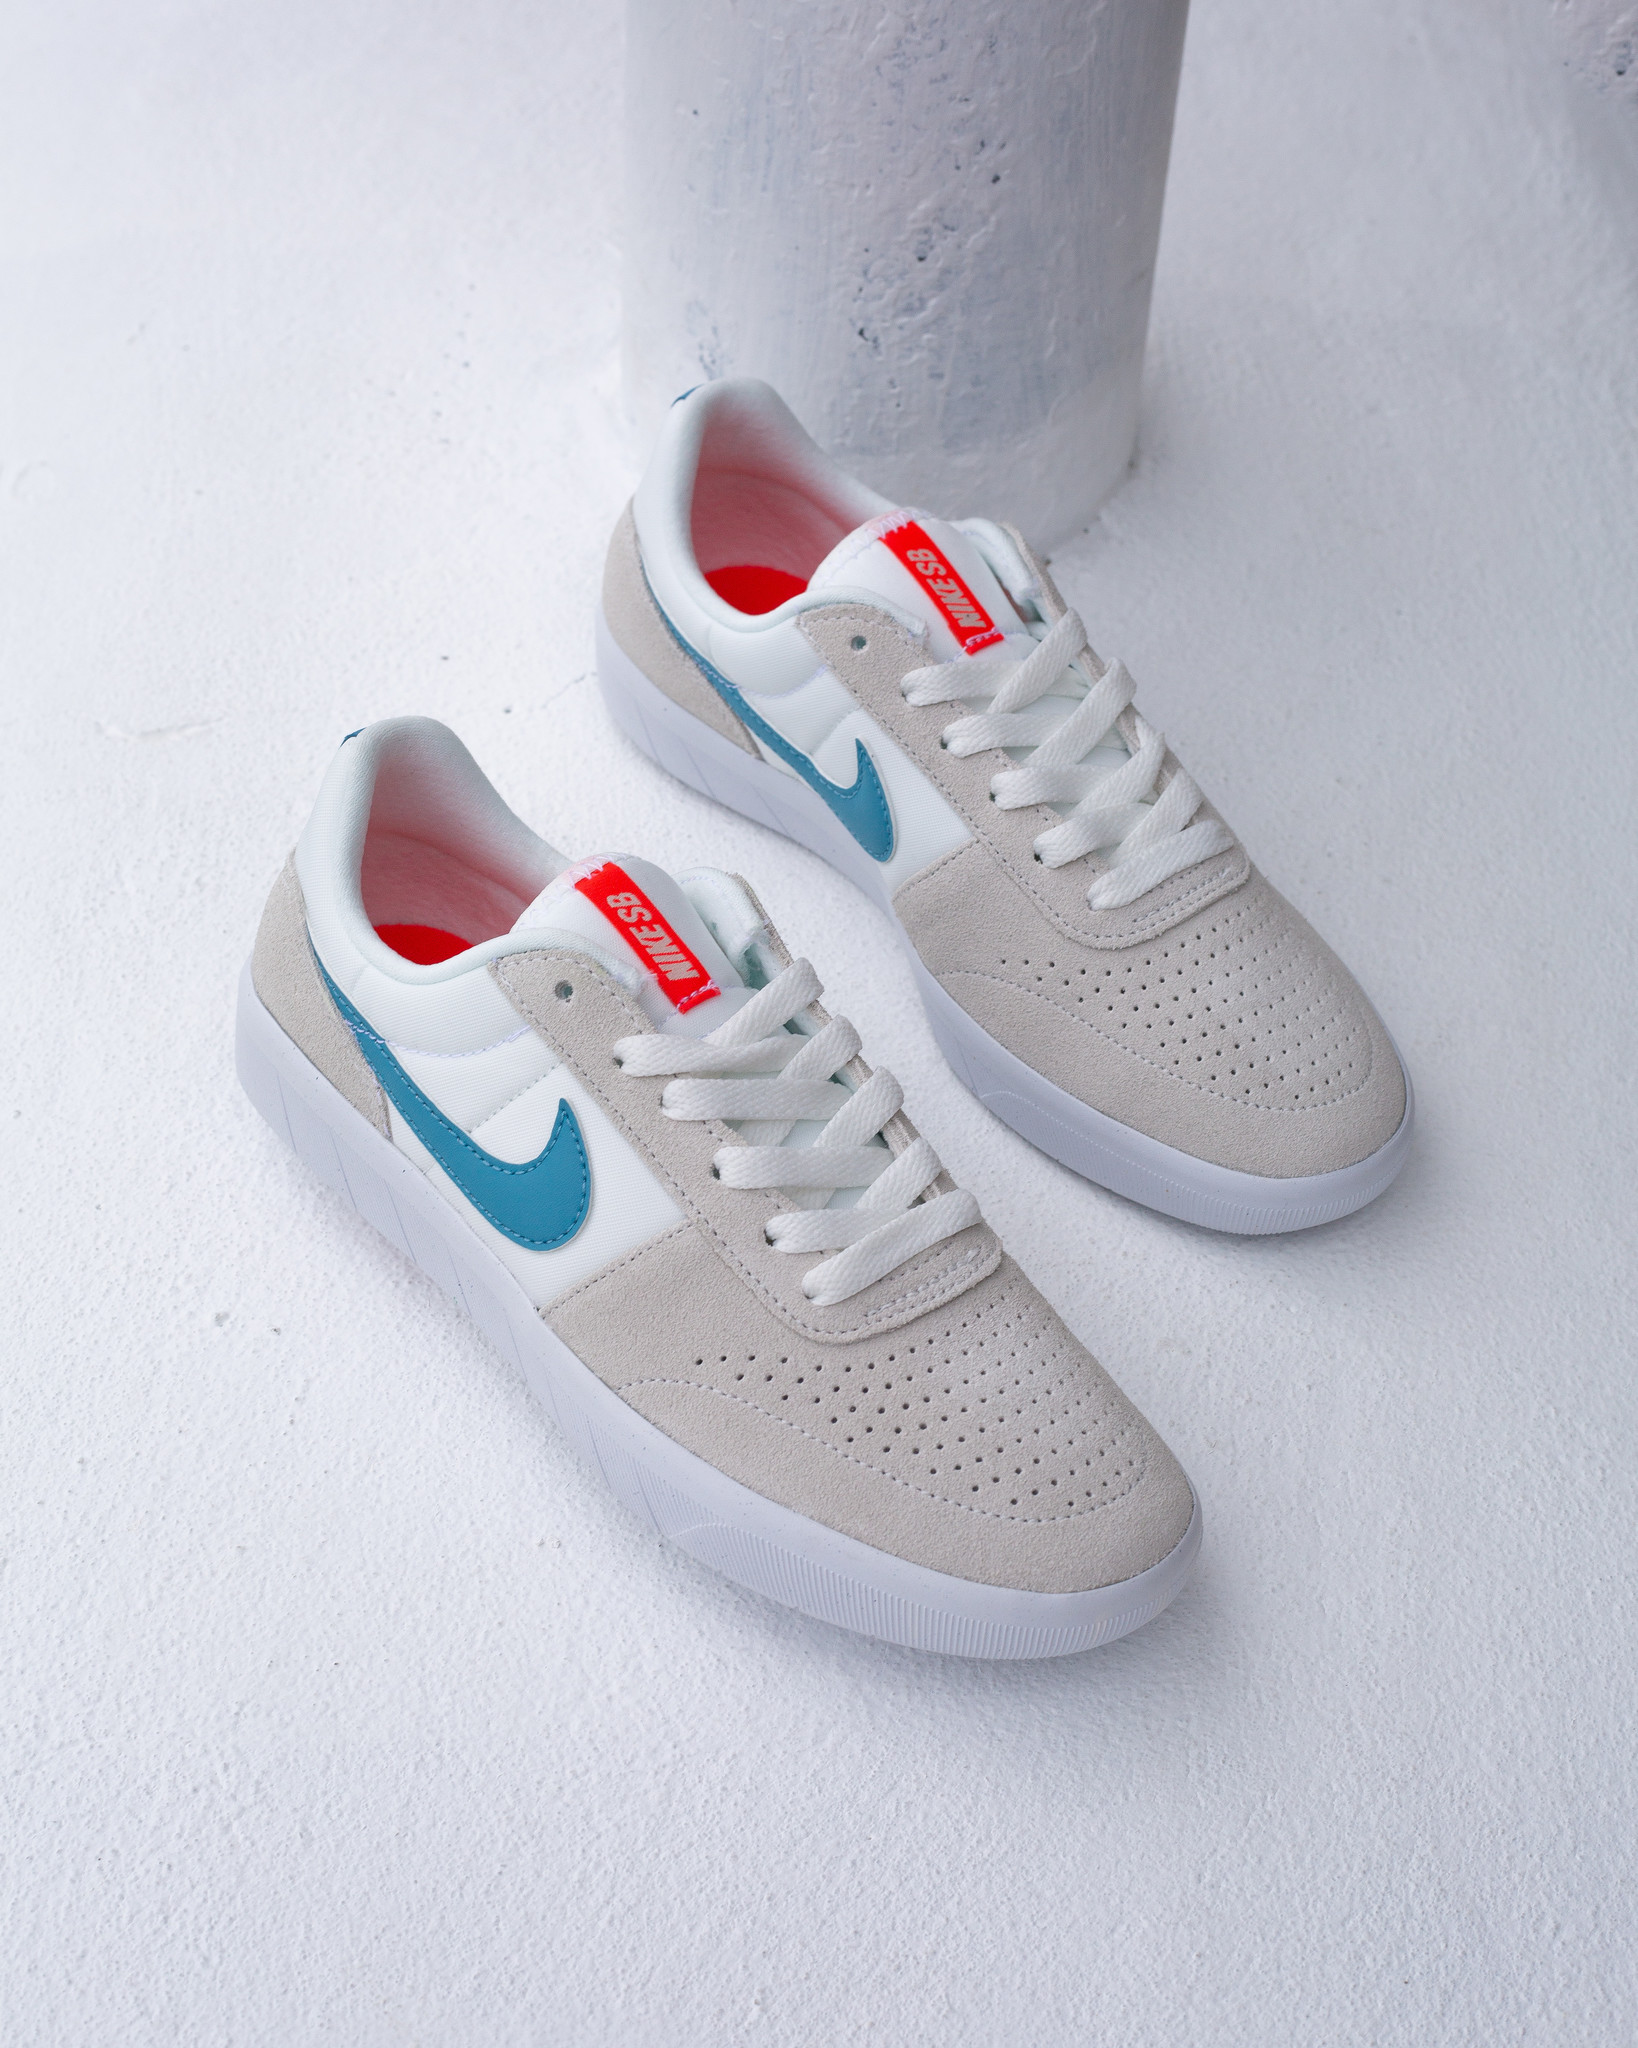 Nike SB Team Classic Summit White/Cerulean